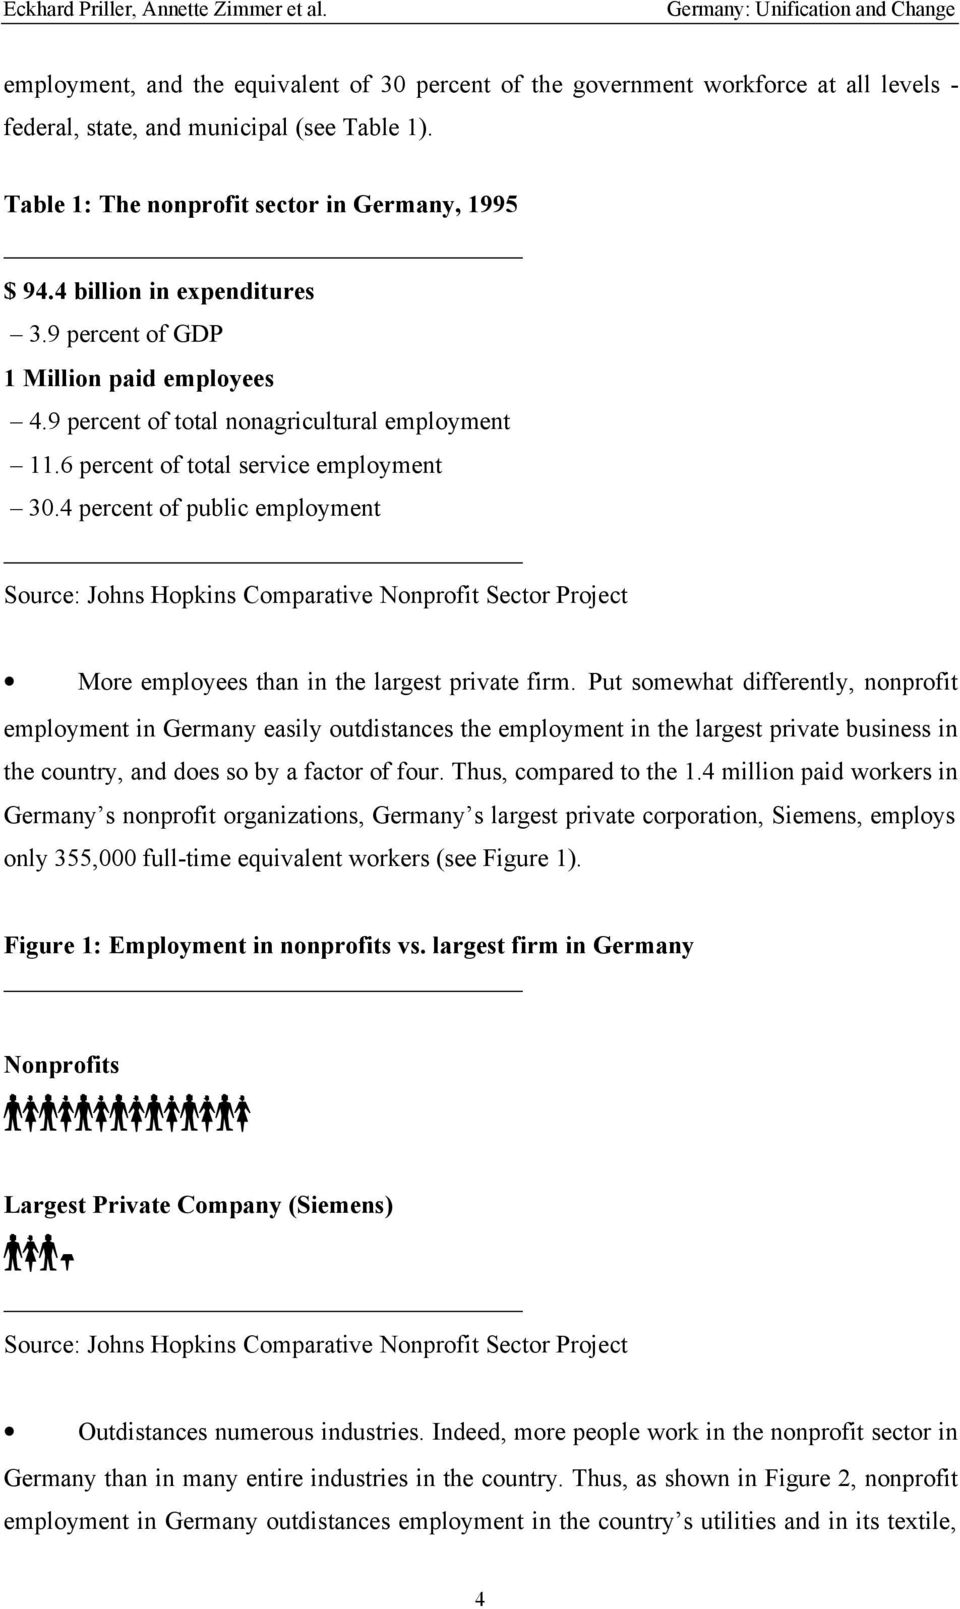 Table 1: The nonprofit sector in Germany, 1995 $ 94.4 billion in expenditures 3.9 percent of GDP 1 Million paid employees 4.9 percent of total nonagricultural employment 11.